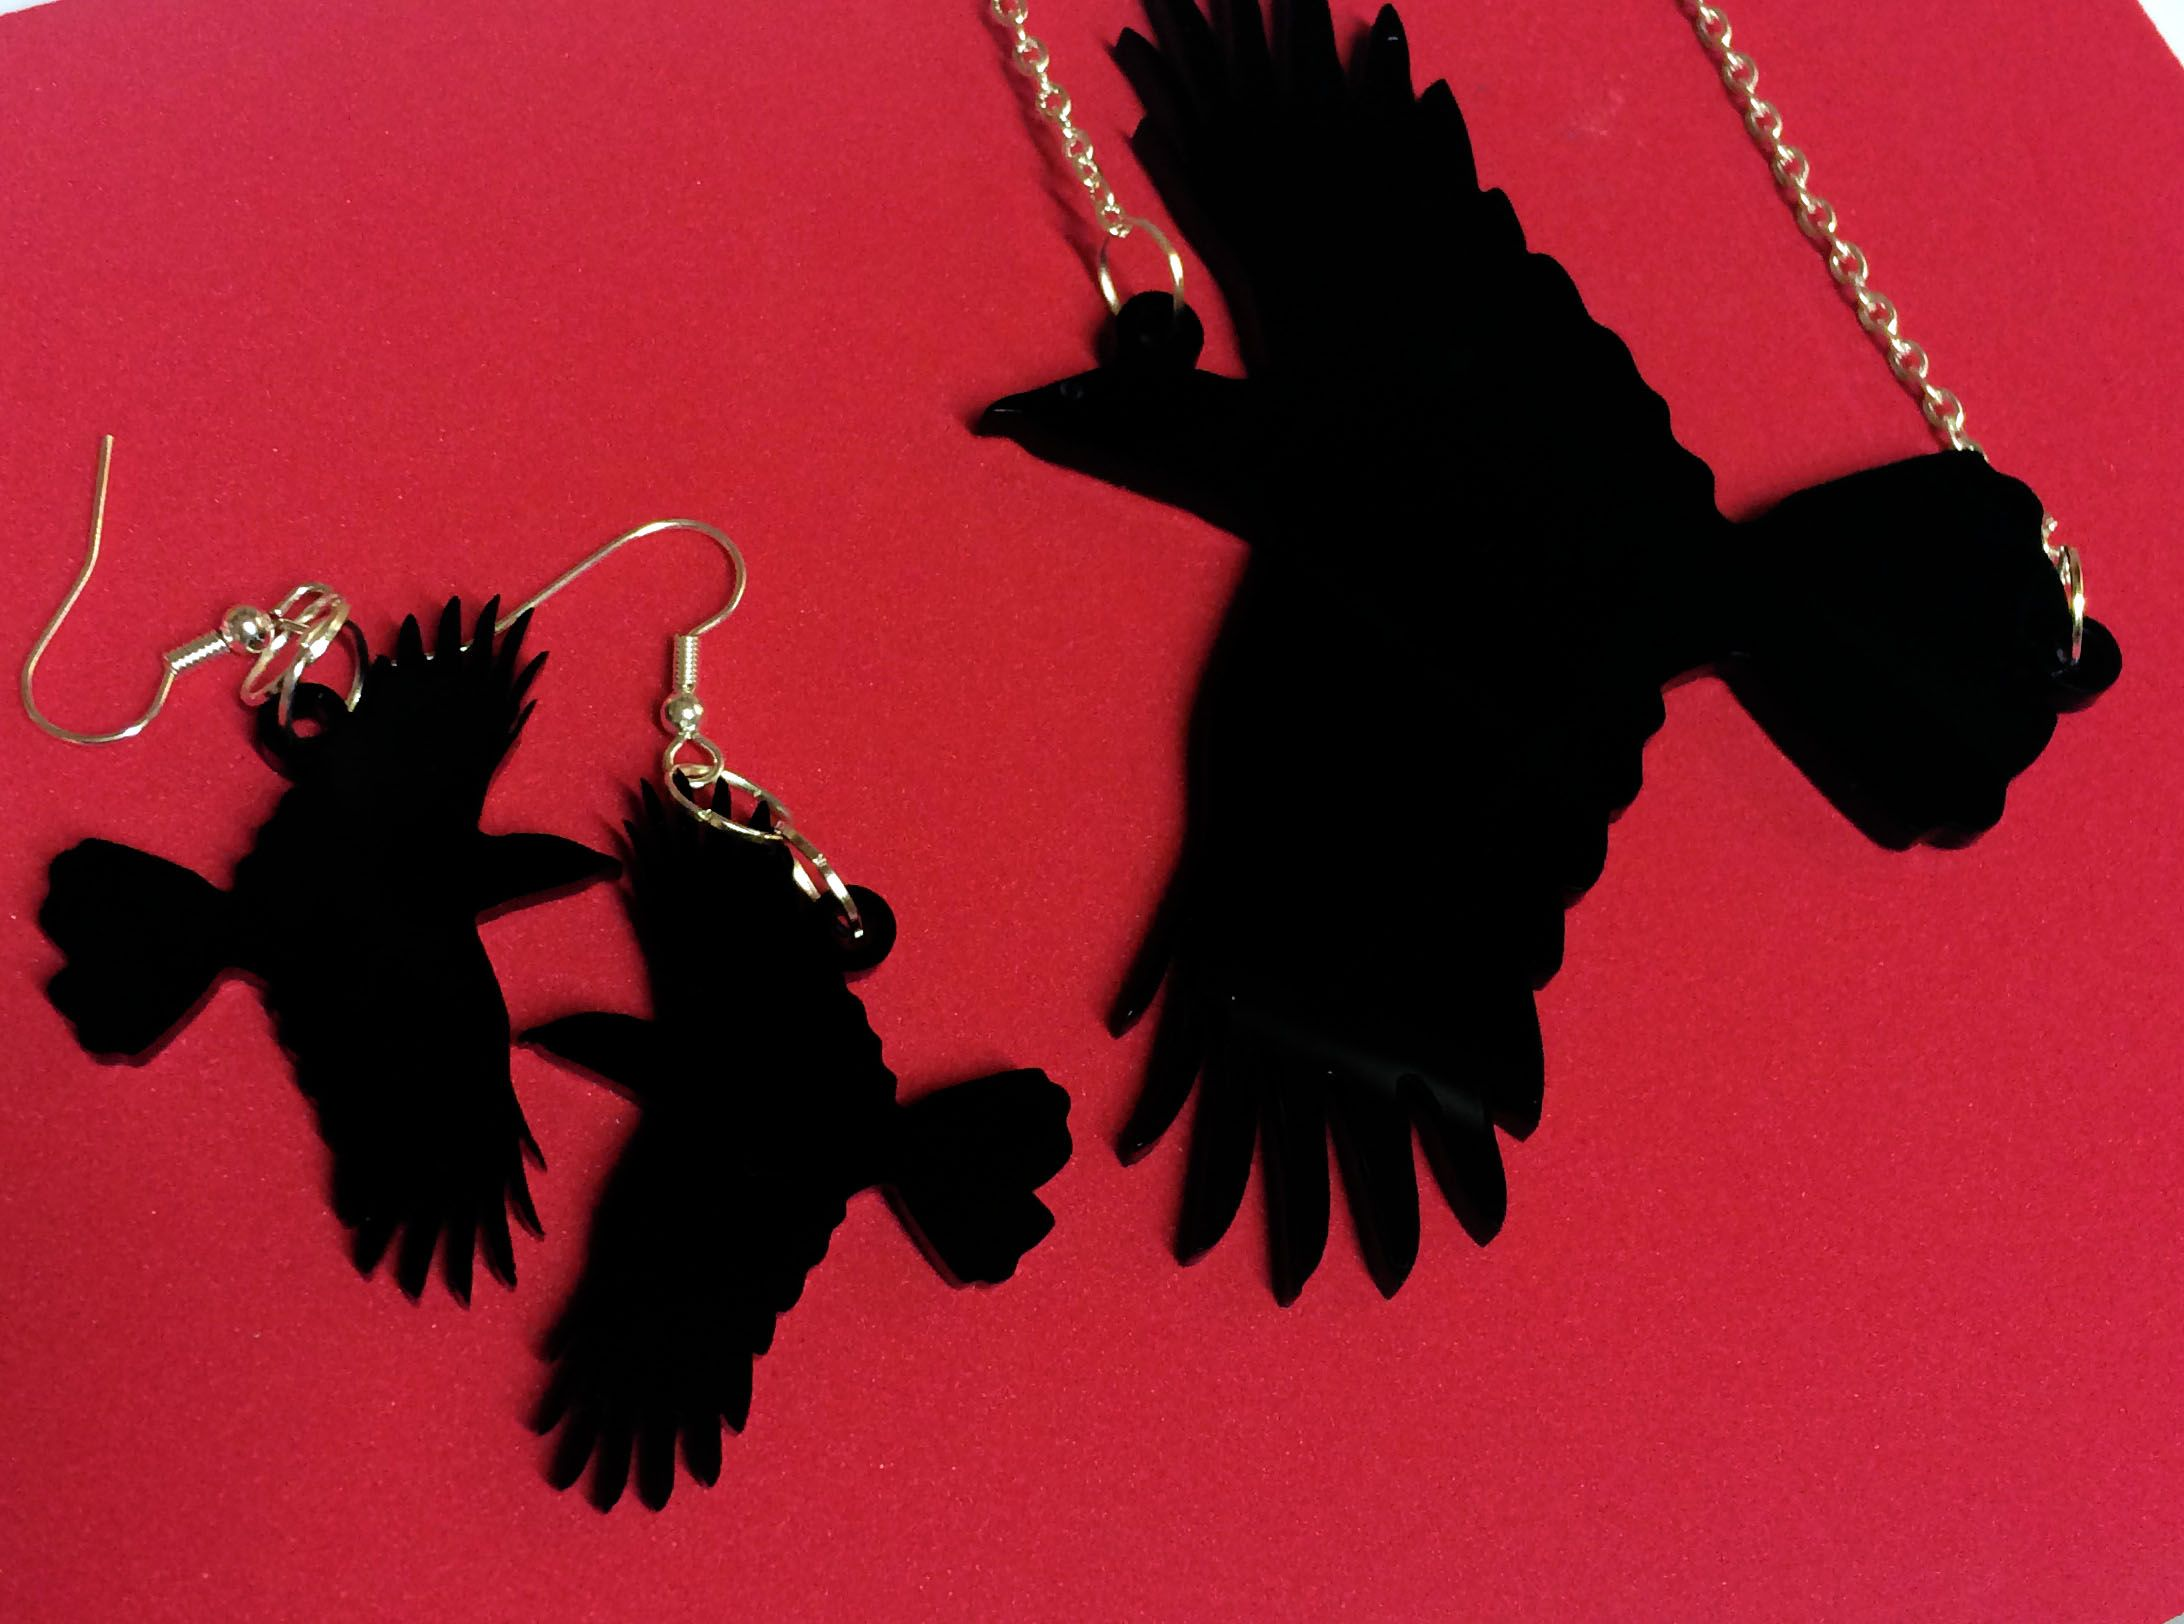 Crow perspex acrylic necklace and earrings set